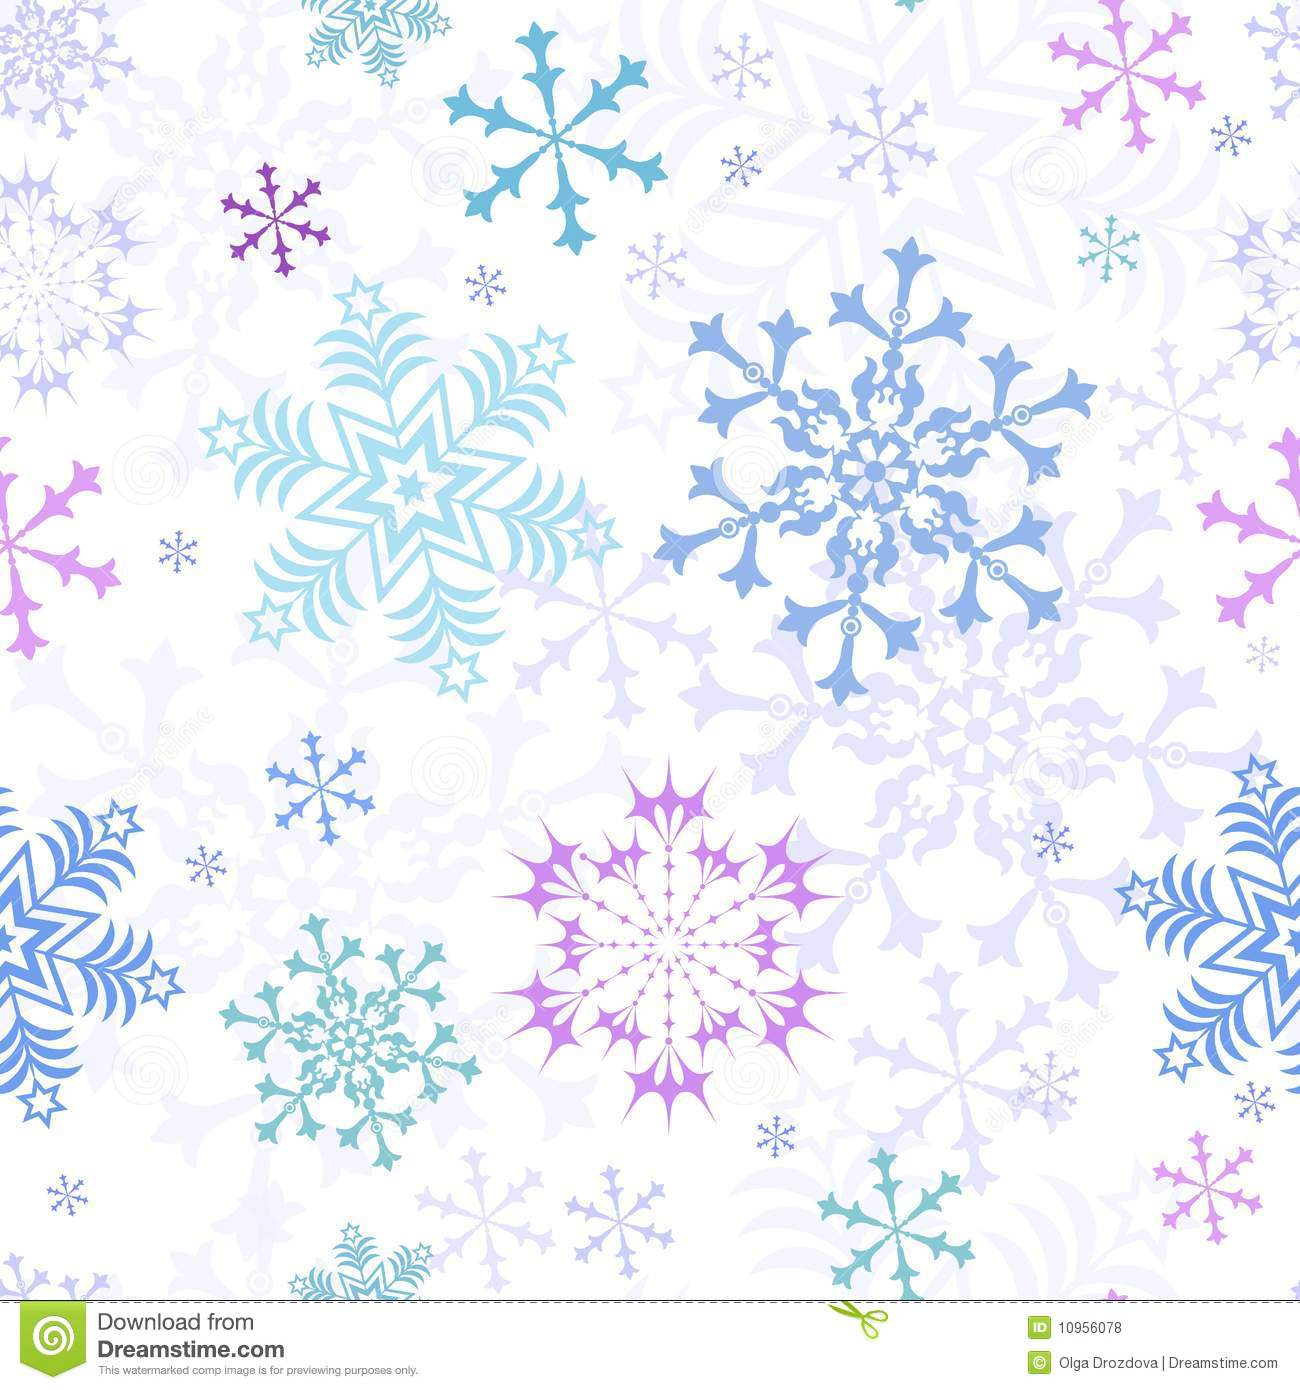 Cute Downloadable Wallpapers Abstract Christmas Pastel Seamless Pattern Stock Vector